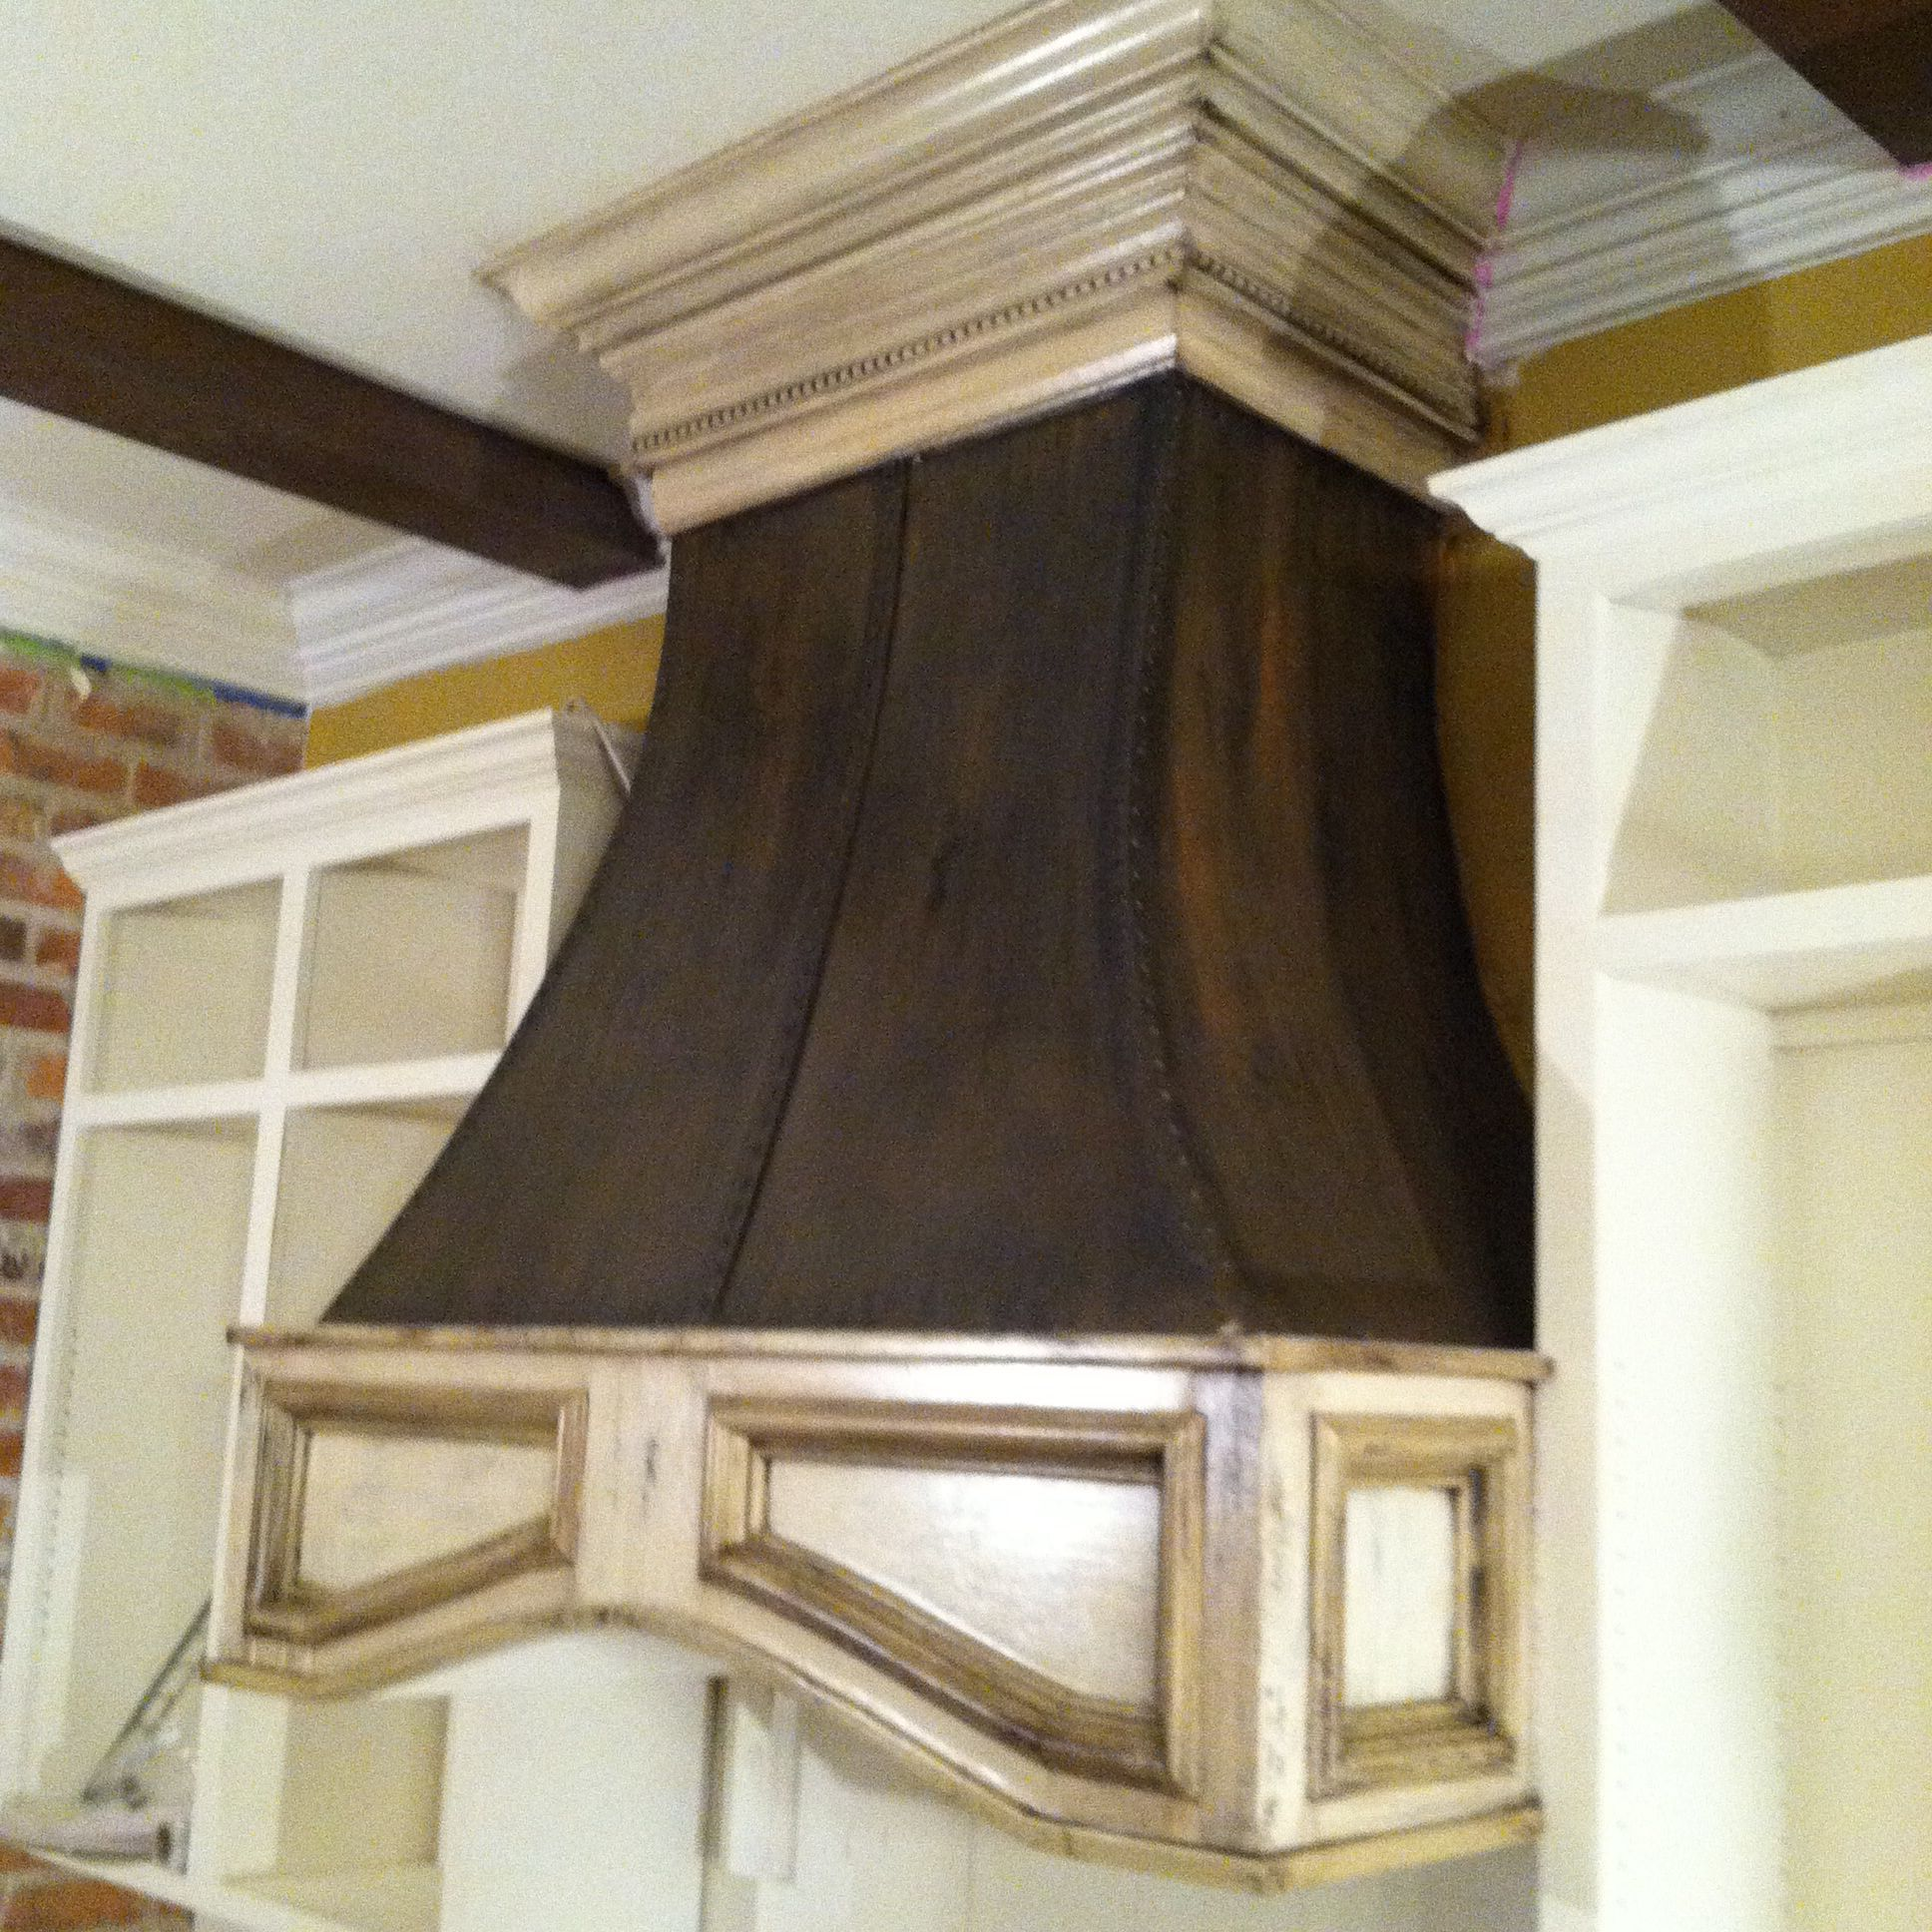 sheetrock and mdf painted hood vent kitchen style kitchen decor house on outdoor kitchen vent hood ideas id=26586